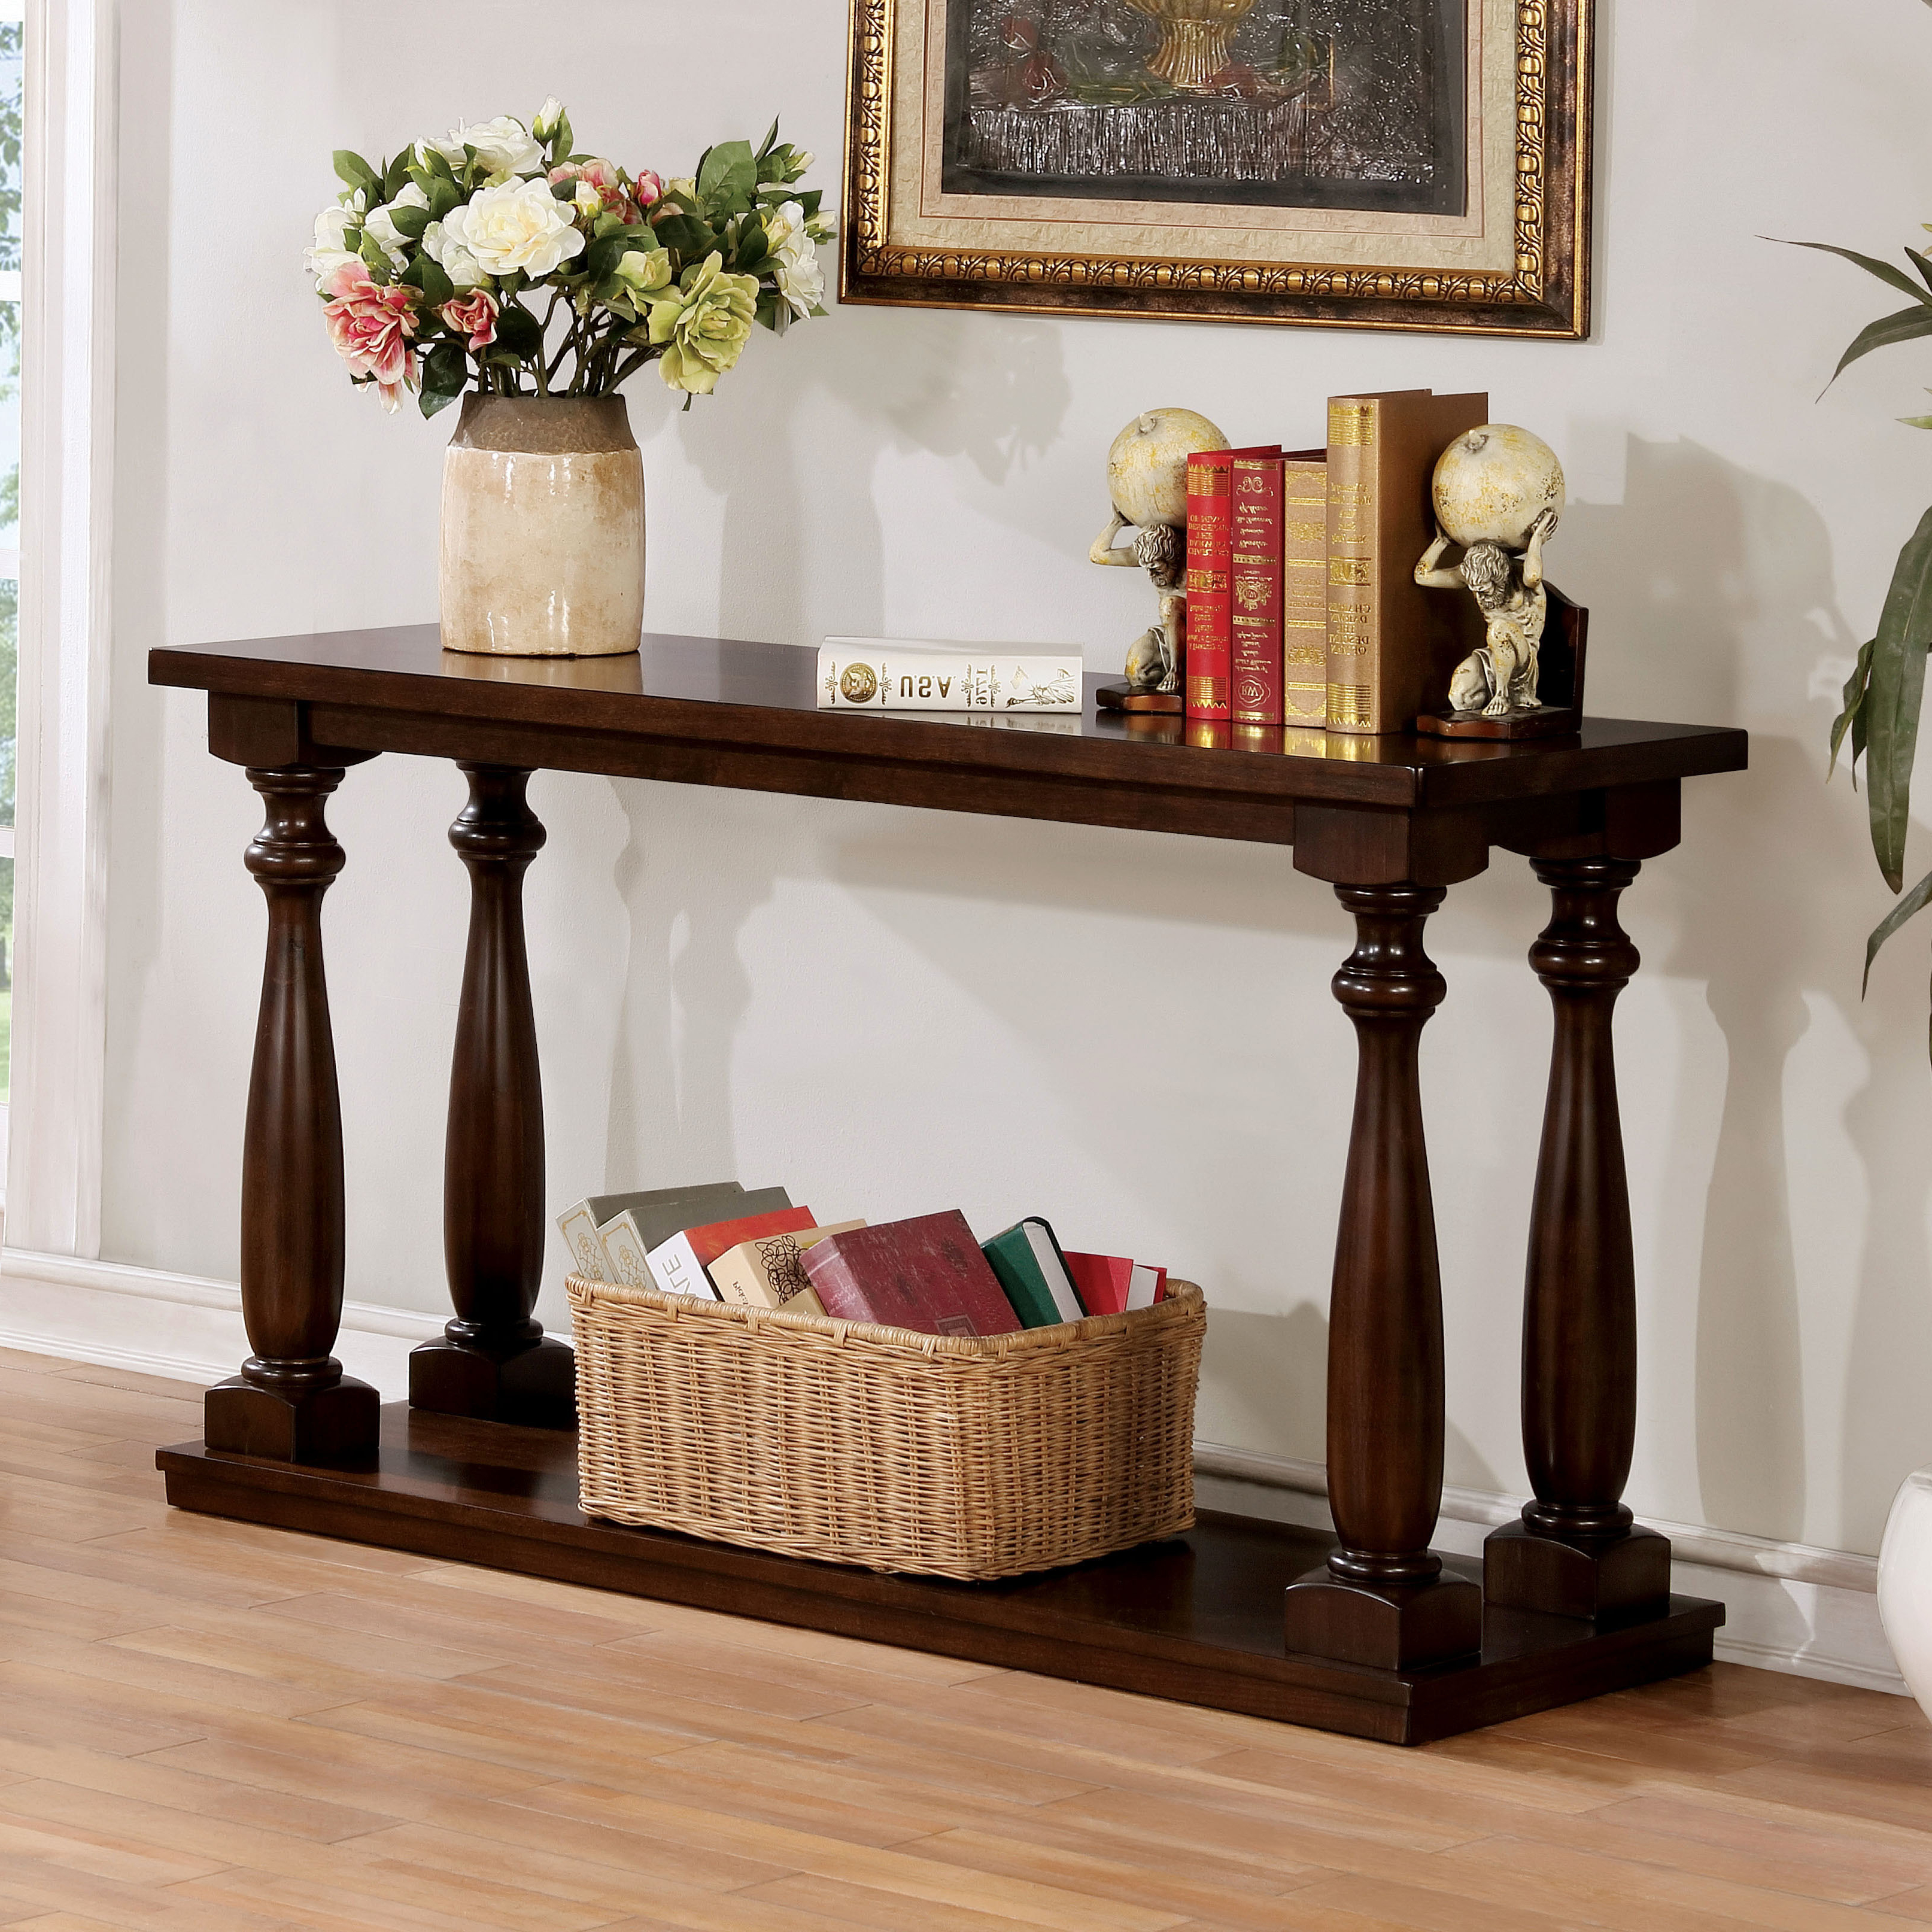 Best And Newest Jessa Rustic Country 54 Inch Coffee Tables With Regard To Furniture Of America Jessa Rustic Country Style Open 54 Inch Wood Sofa Table (View 12 of 20)